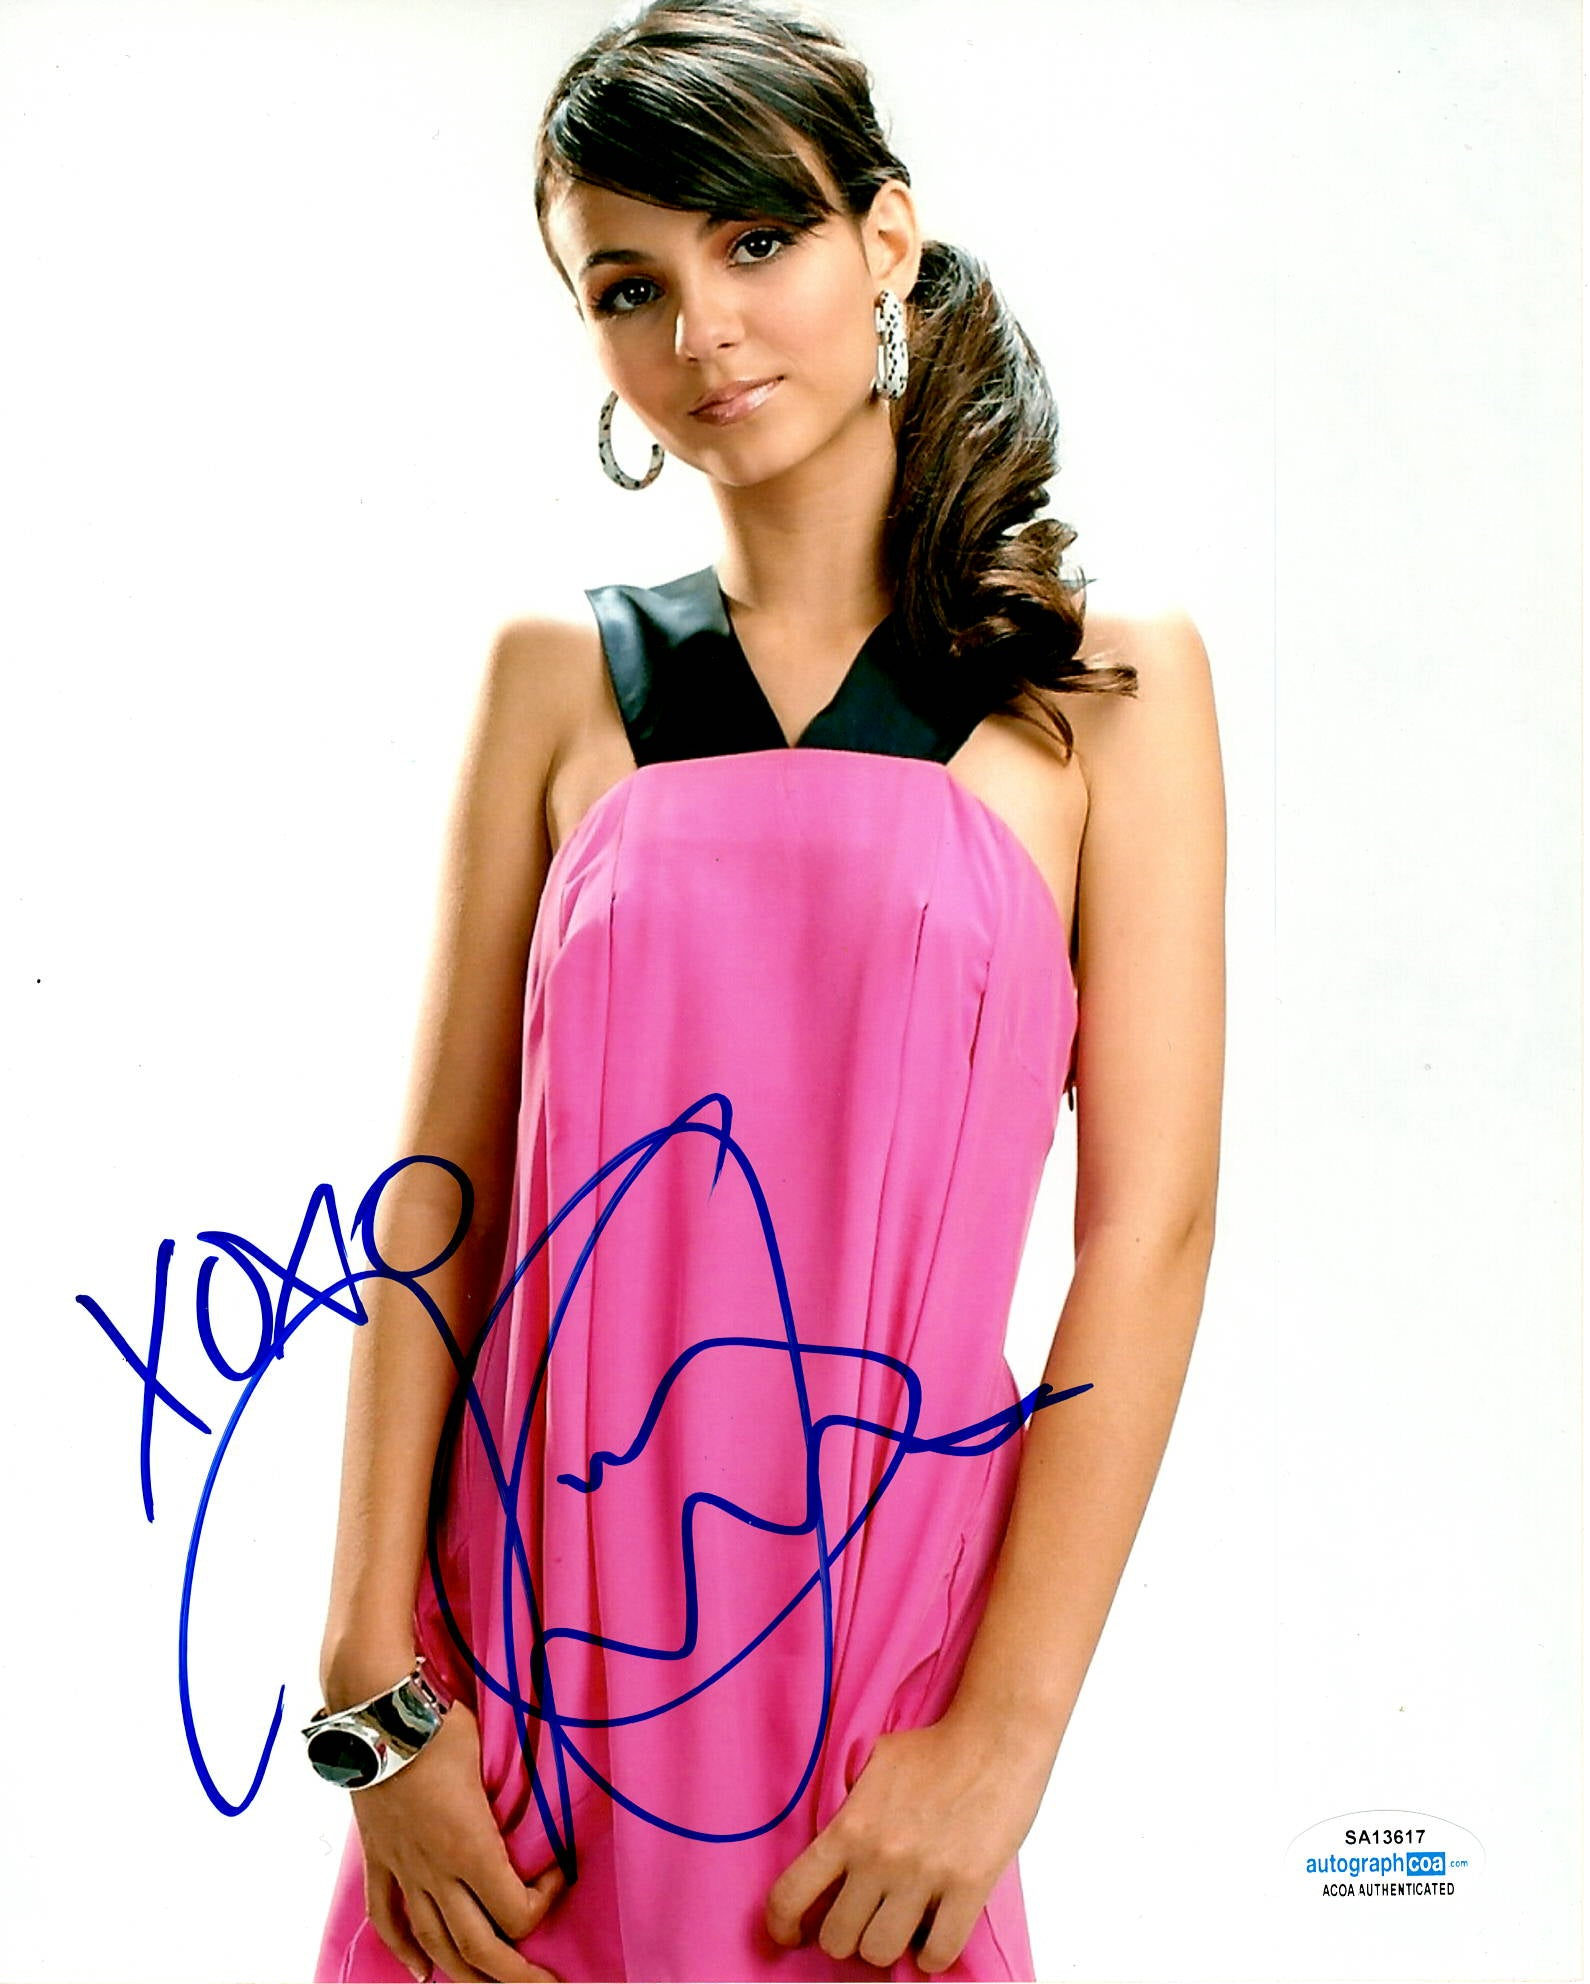 Victoria Justice Sexy Signed Autograph 8x10 Photo - Outlaw Hobbies Authentic Autographs